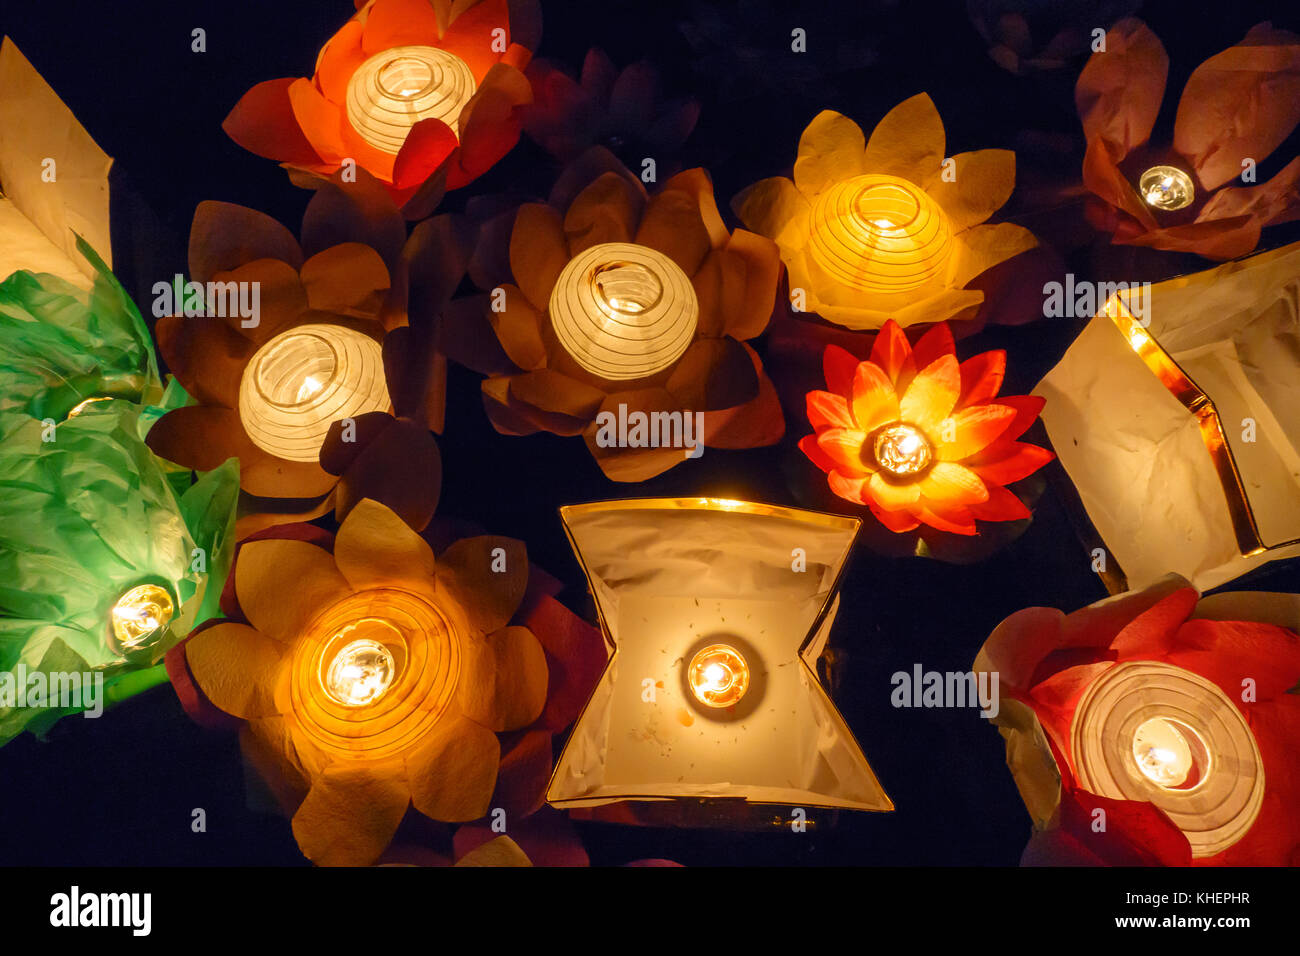 Floating Lotus Flower Paper Lanterns On Water Stock Photo 165667539